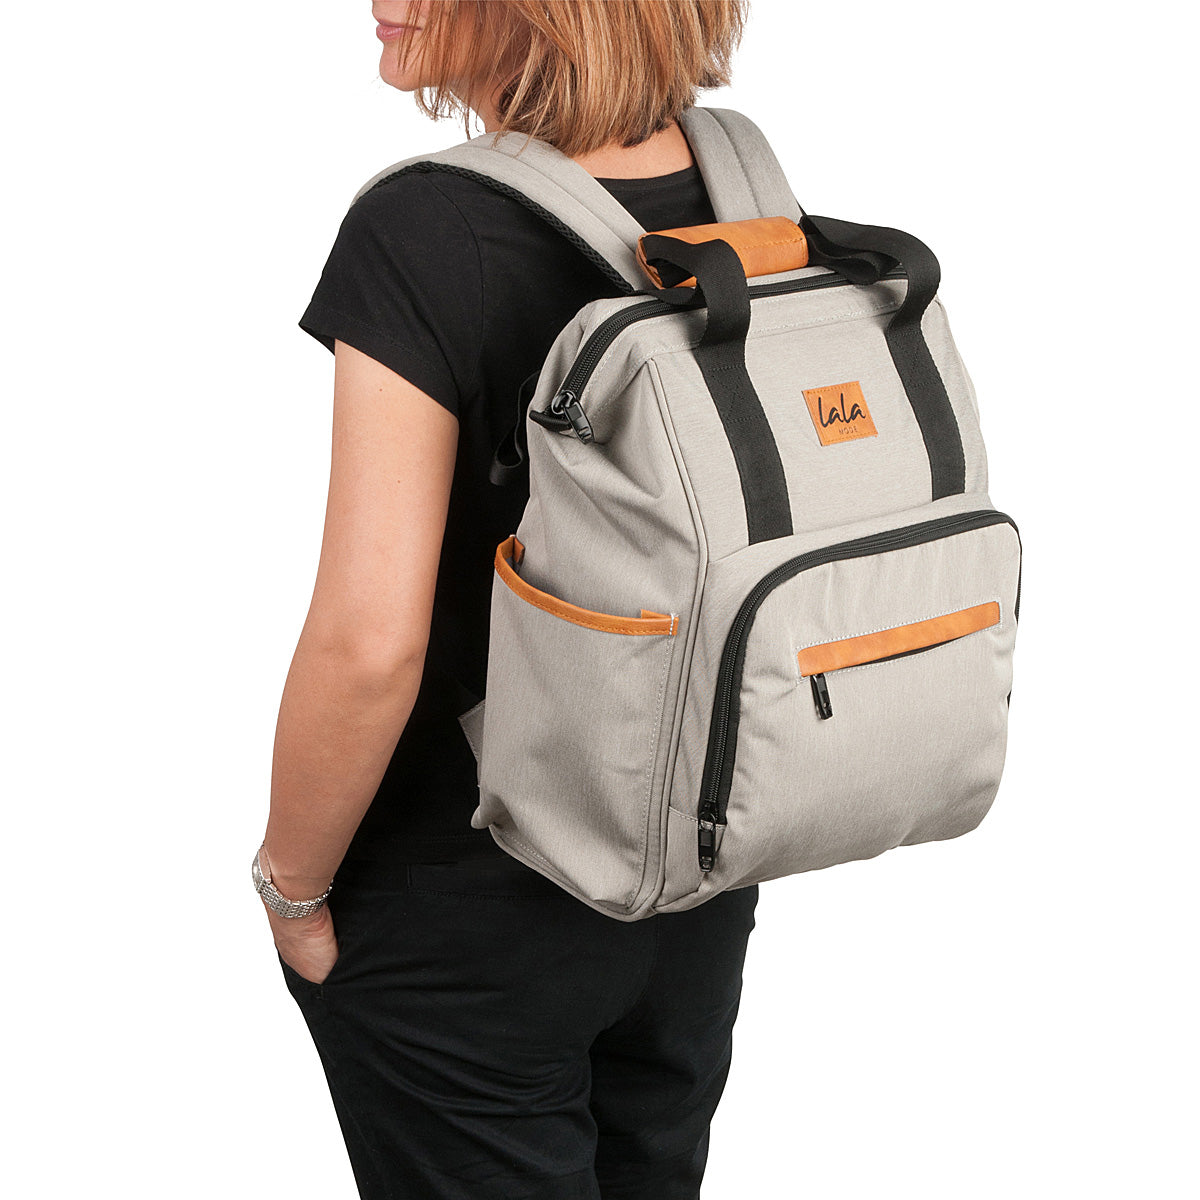 Baby Diaper/Nappy Backpack Bag